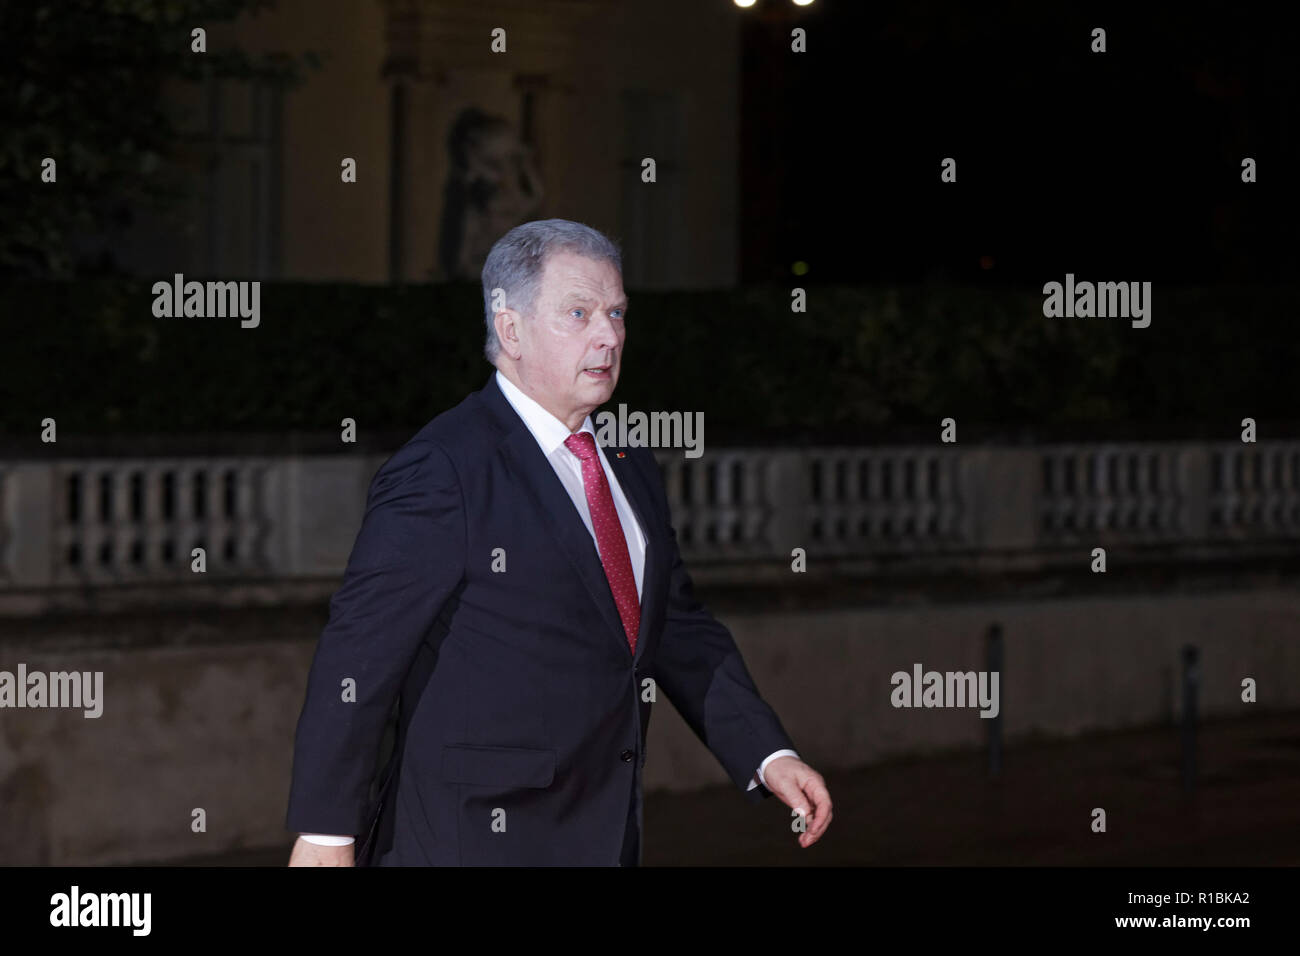 Paris, France. 10th Nov, 2018. Arrival of President of the Republic of Finland Sauli Niinisto for dinner in the presence of the heads of state, government and international organization leaders during the international commemoration of the centenary of the 1918 armistice at the Musée d'Orsay in Paris on November 10, 2018 in Paris, France. Credit: Bernard Menigault/Alamy Live News - Stock Image